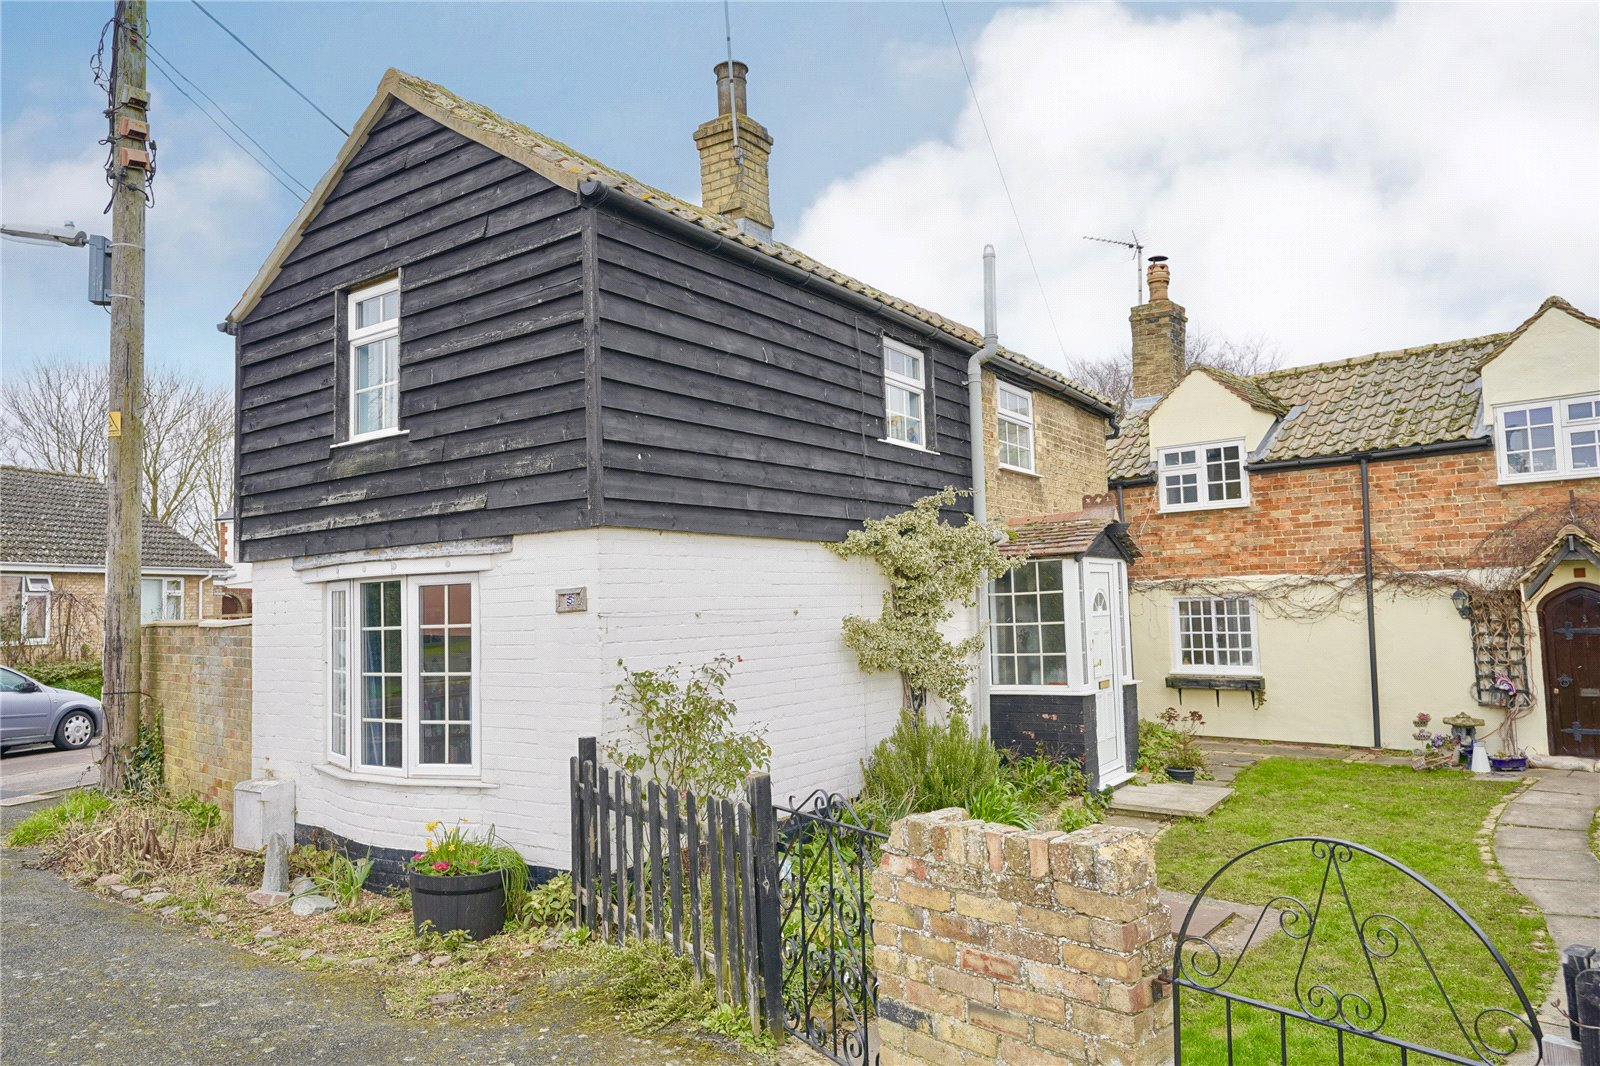 2 bed house for sale in Earith, PE28 3PT  - Property Image 1